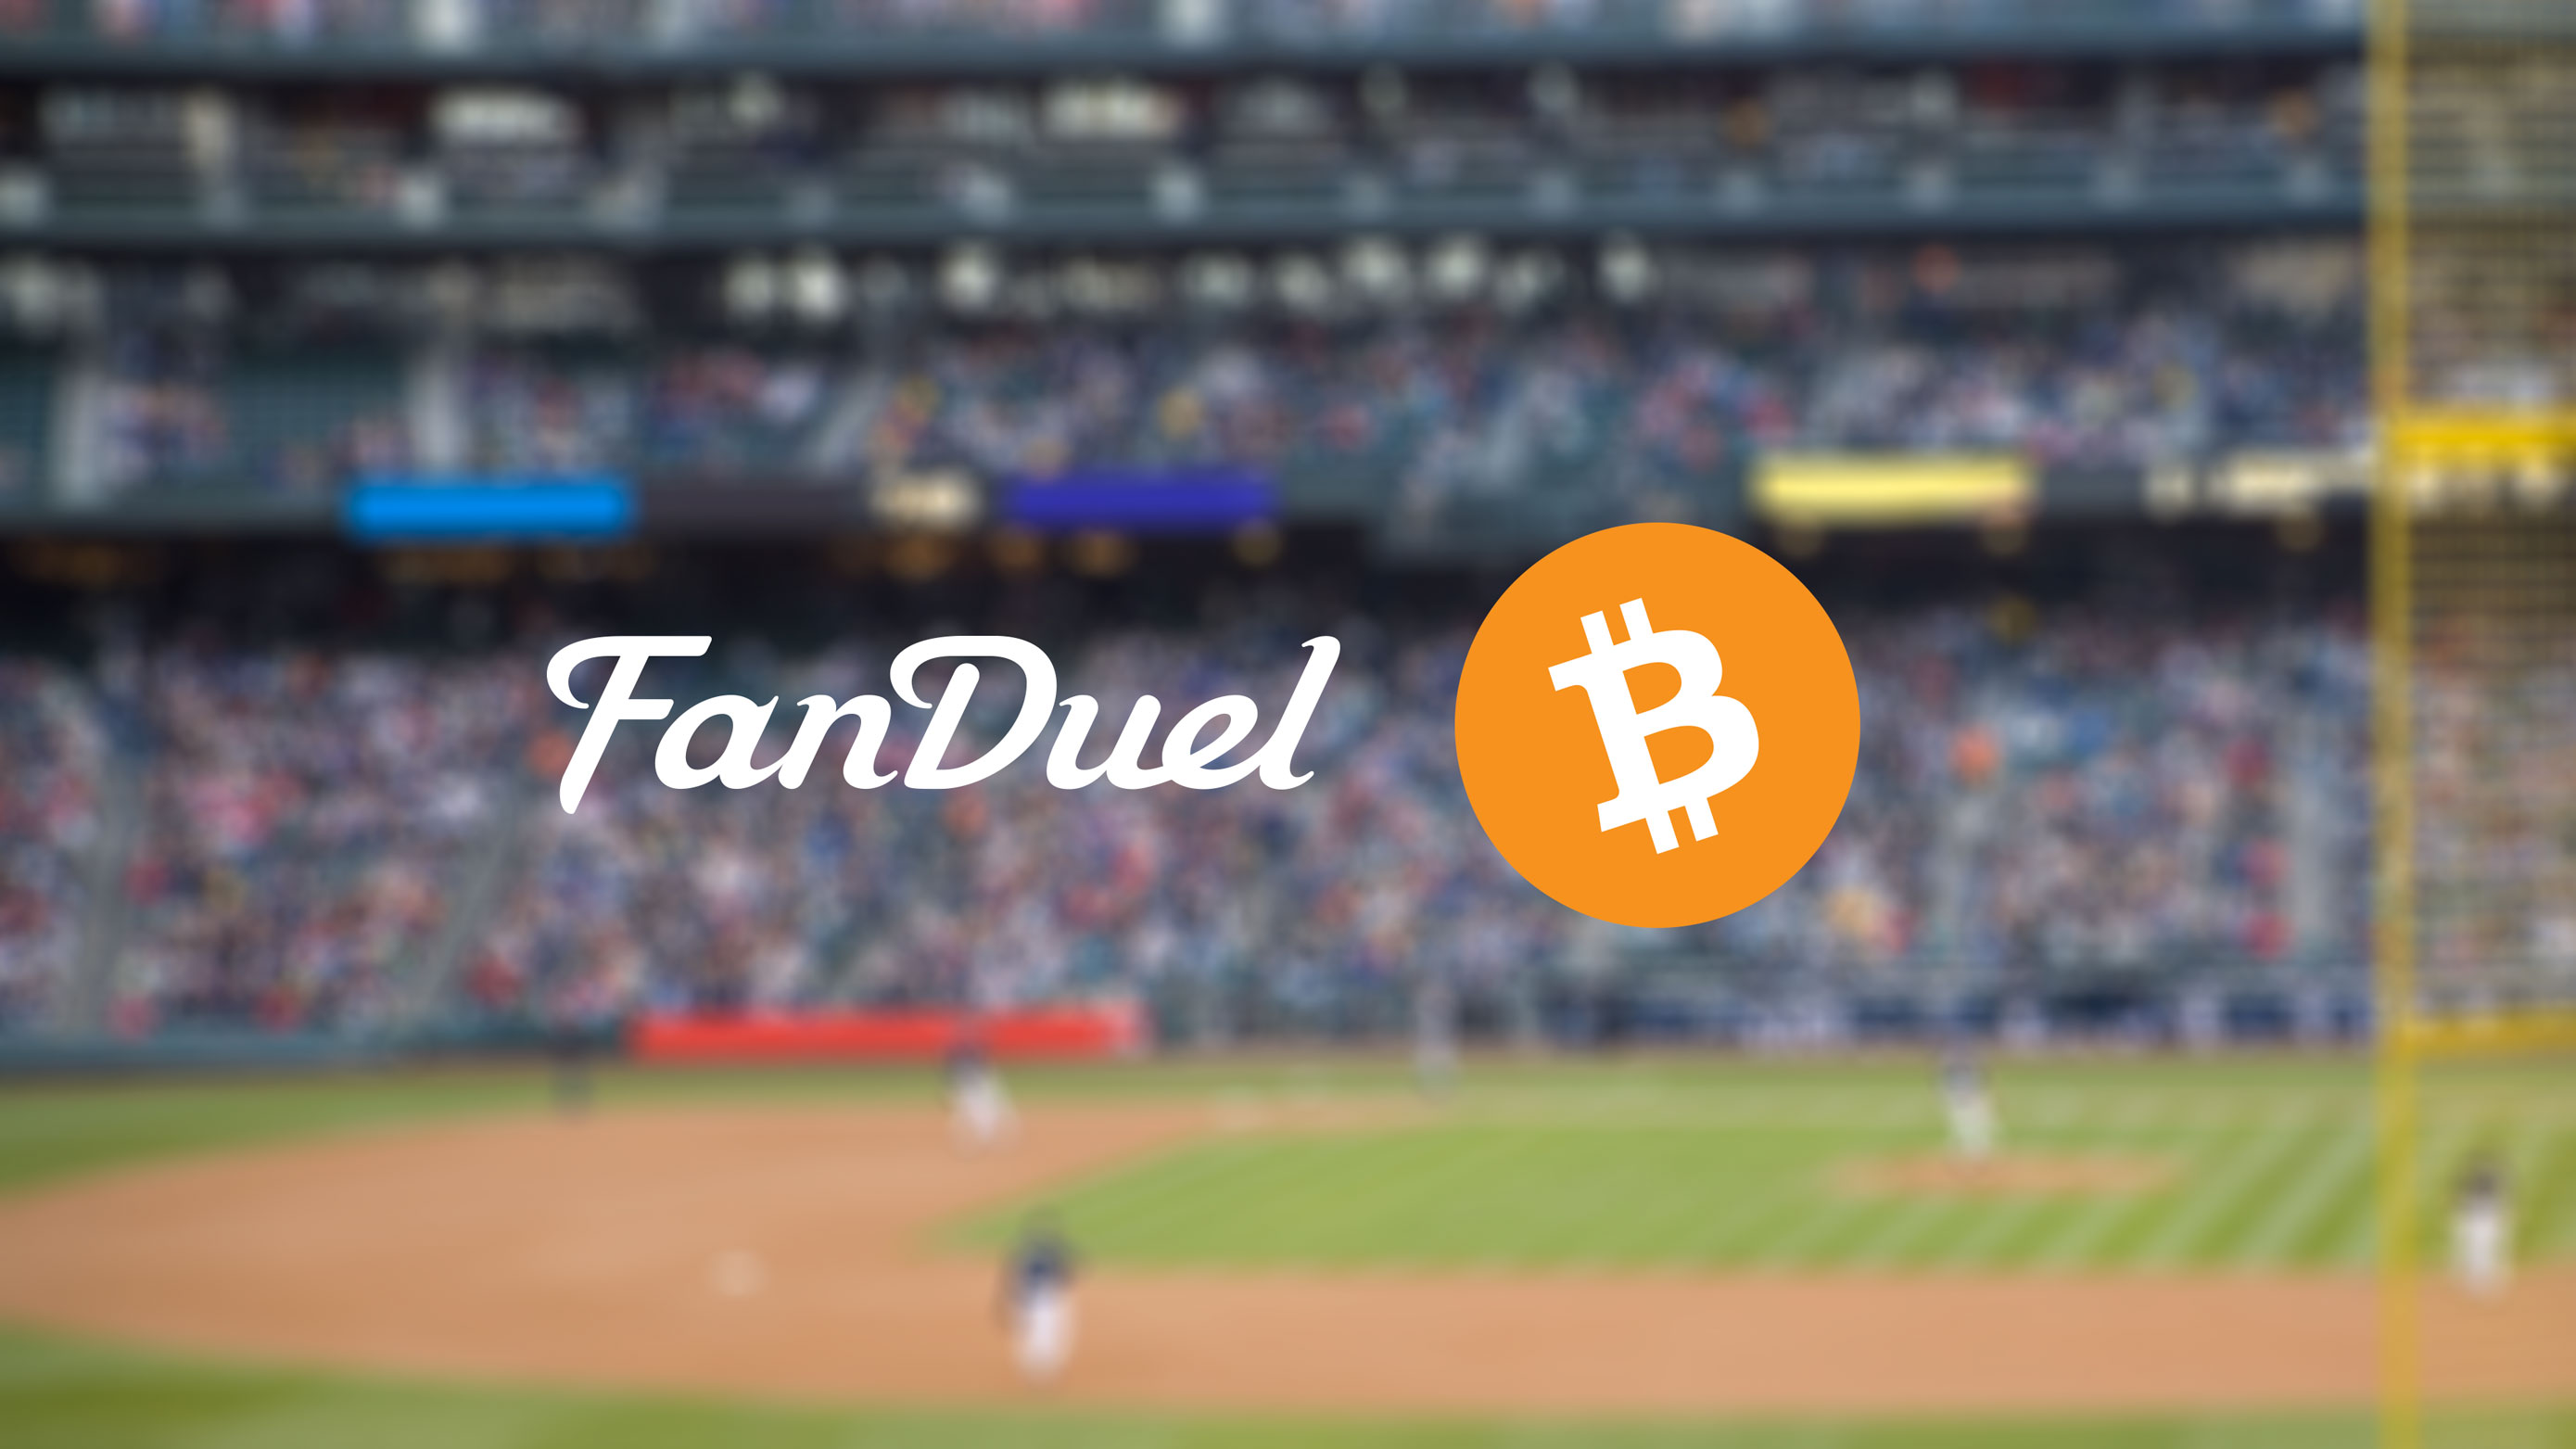 FanDuel is giving away bitcoin to winners of a fantasy football tournament